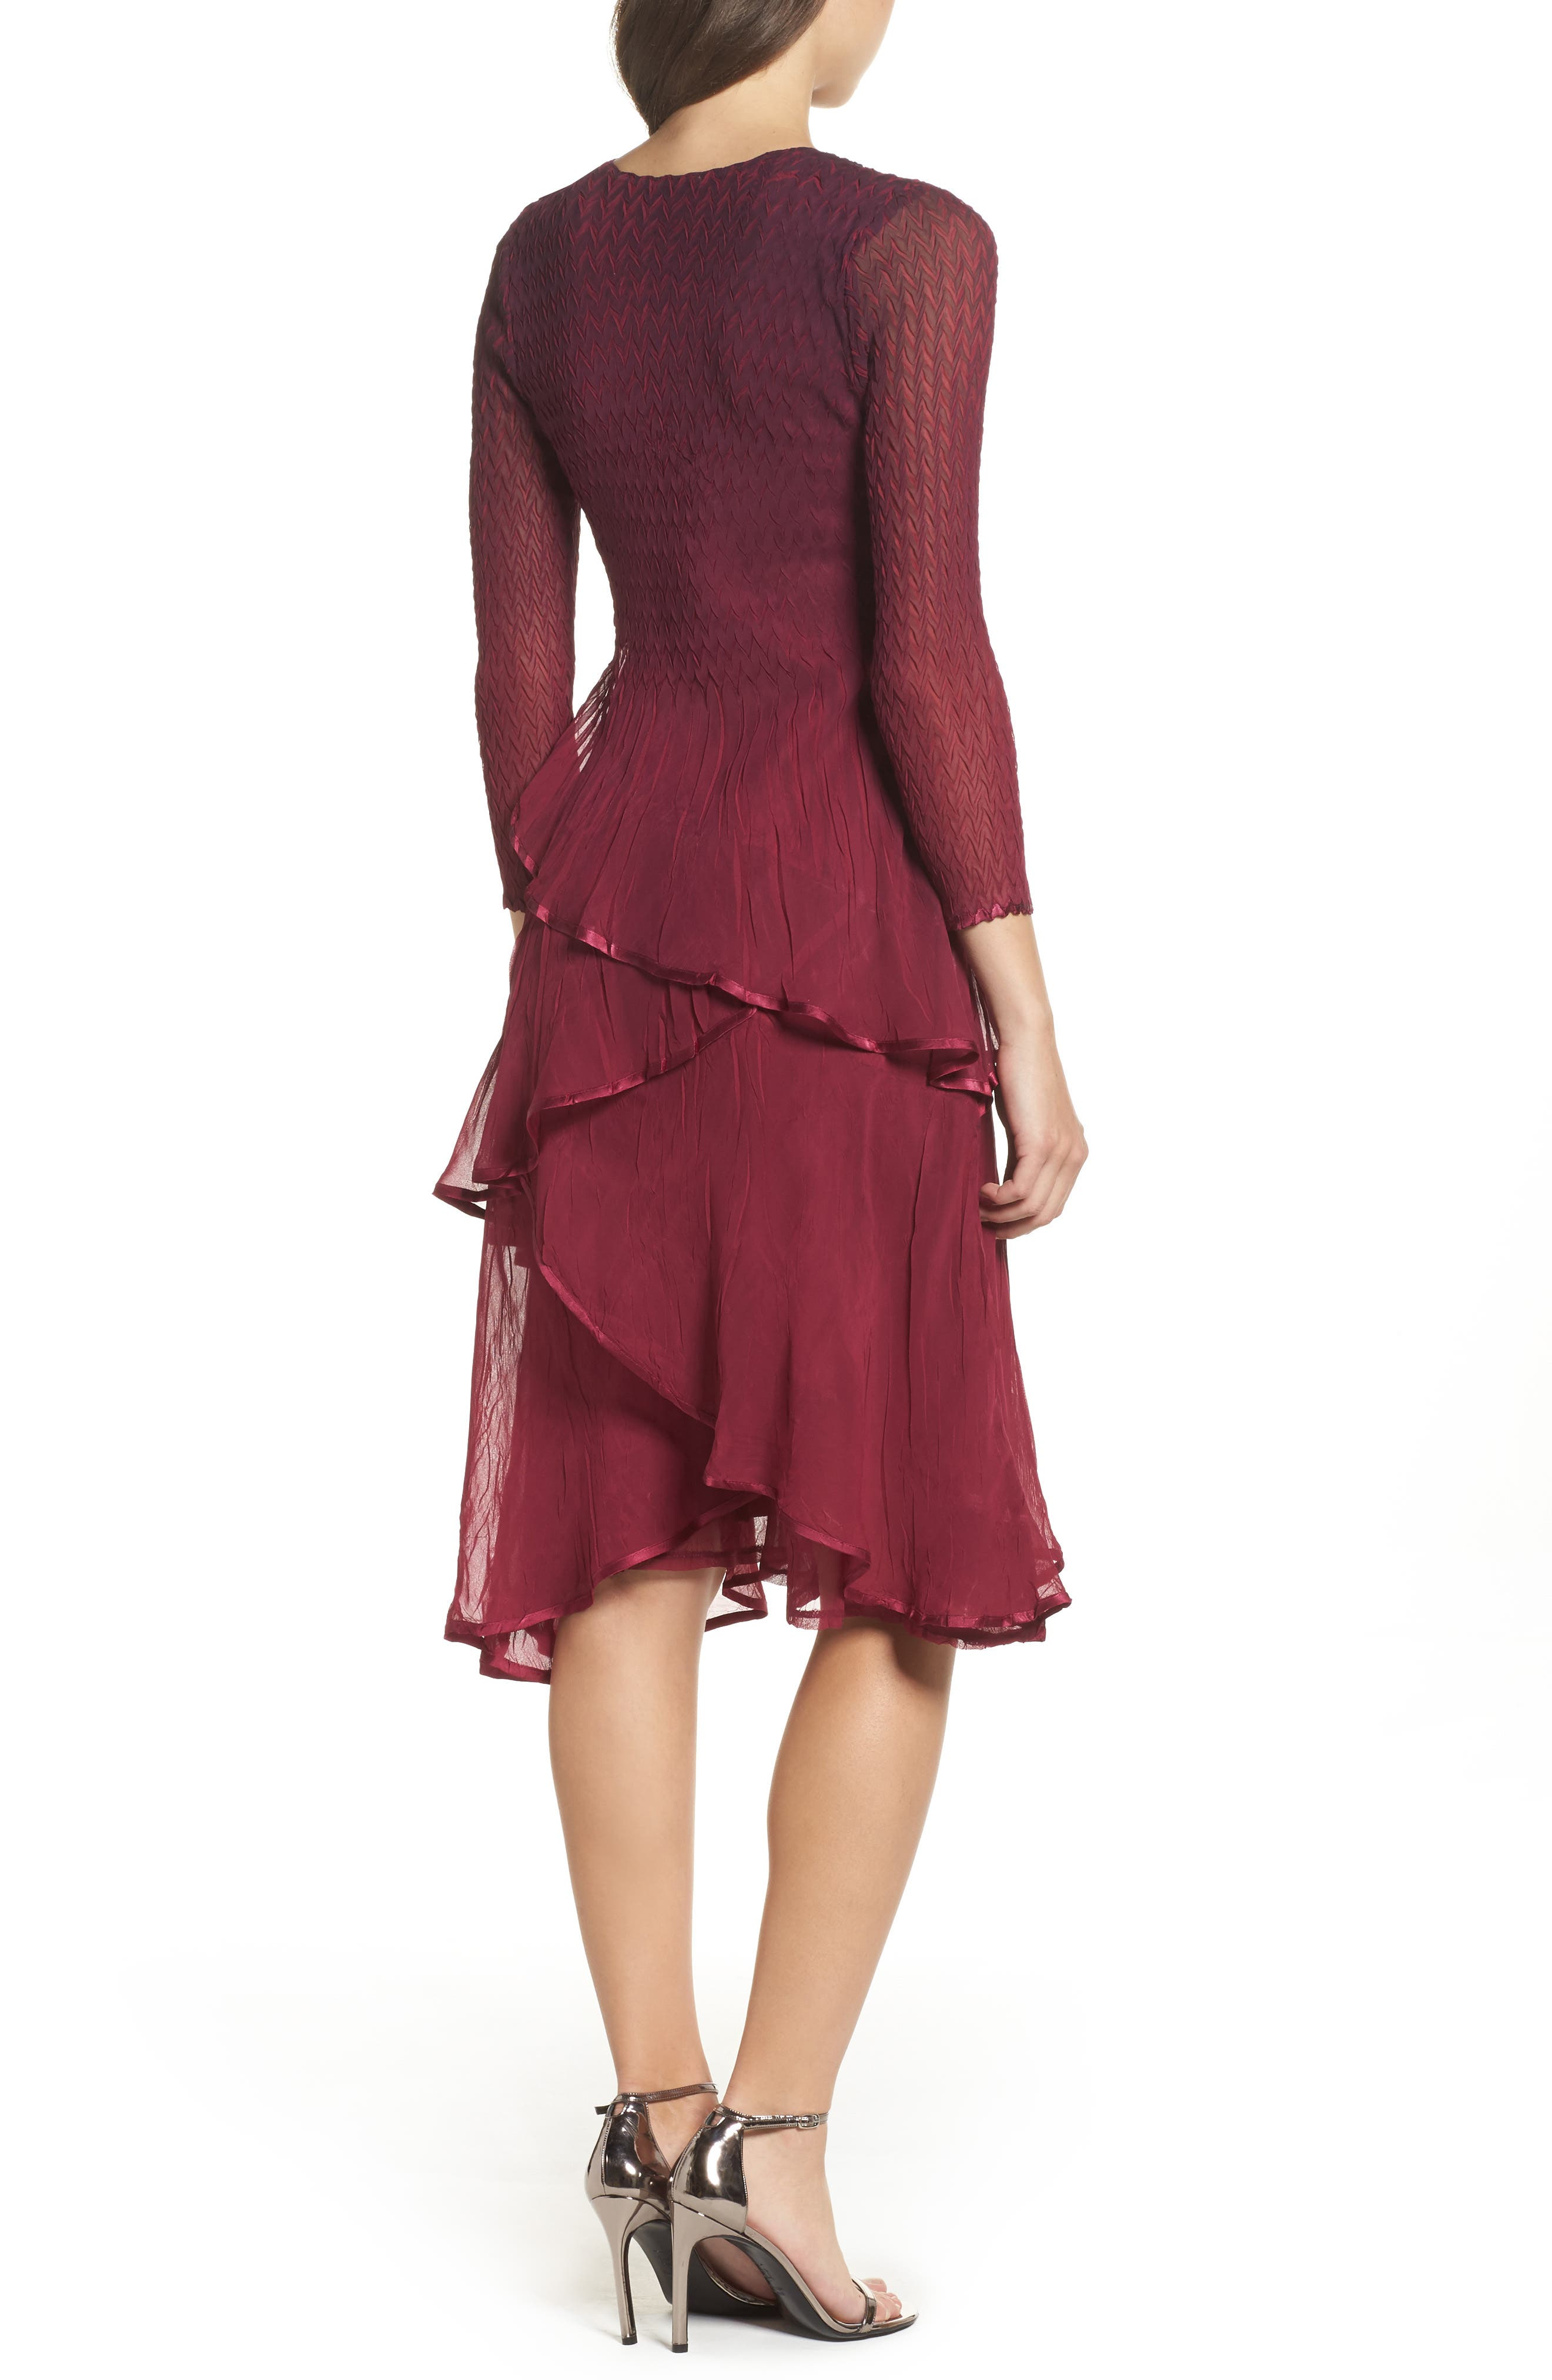 Tiered Ombré Charmeuse & Chiffon Dress,                             Alternate thumbnail 2, color,                             Red Plum Blue Ombre